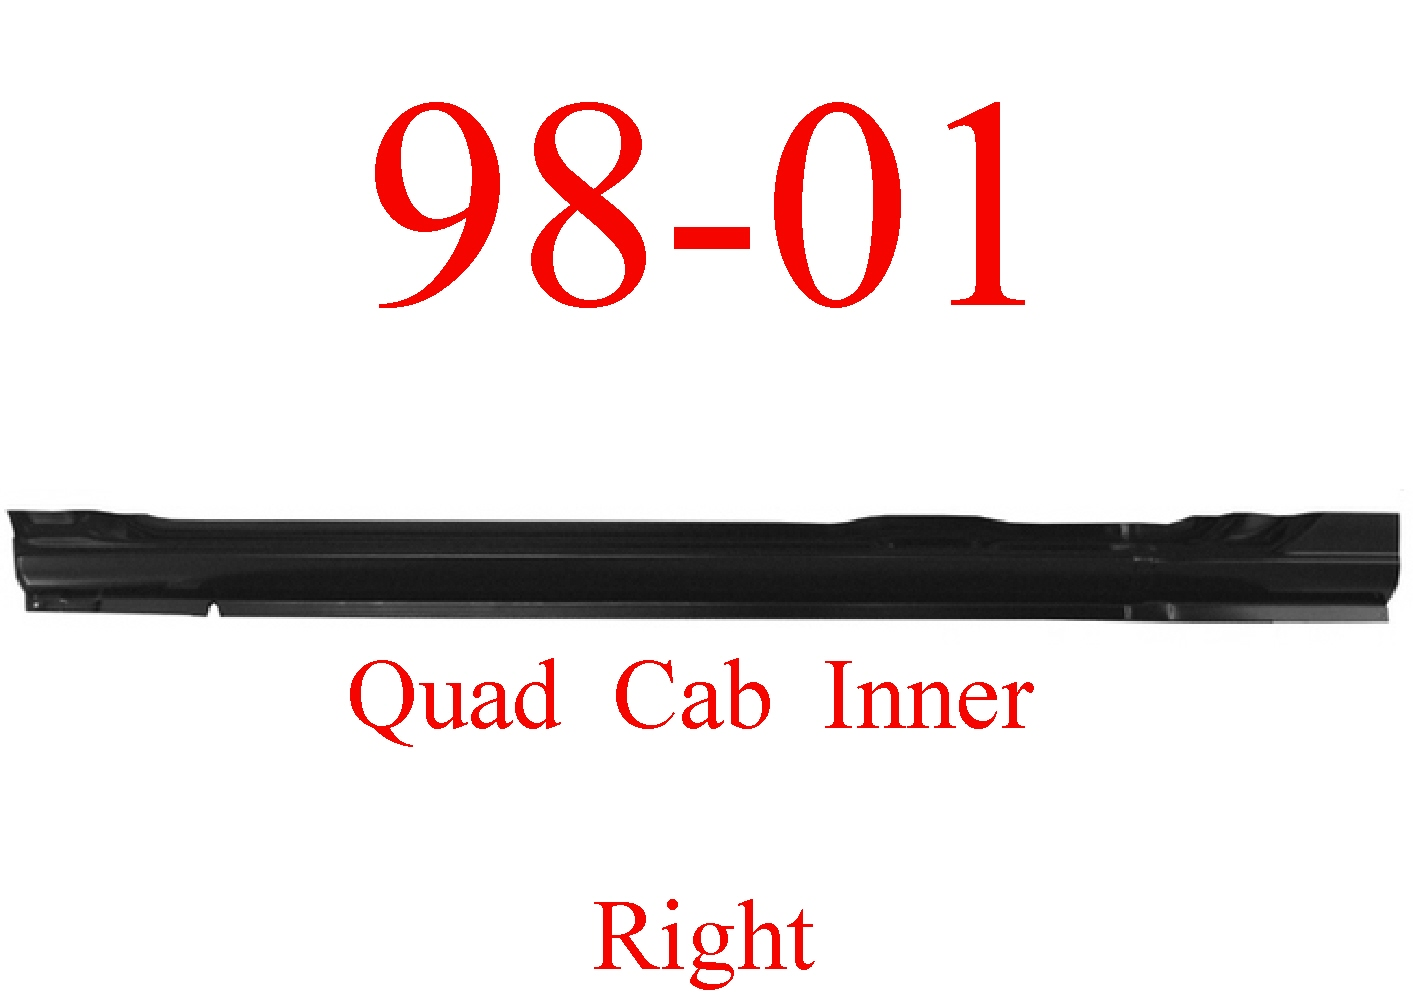 98-01 Dodge Right Quad Cab Inner Rocker Panel